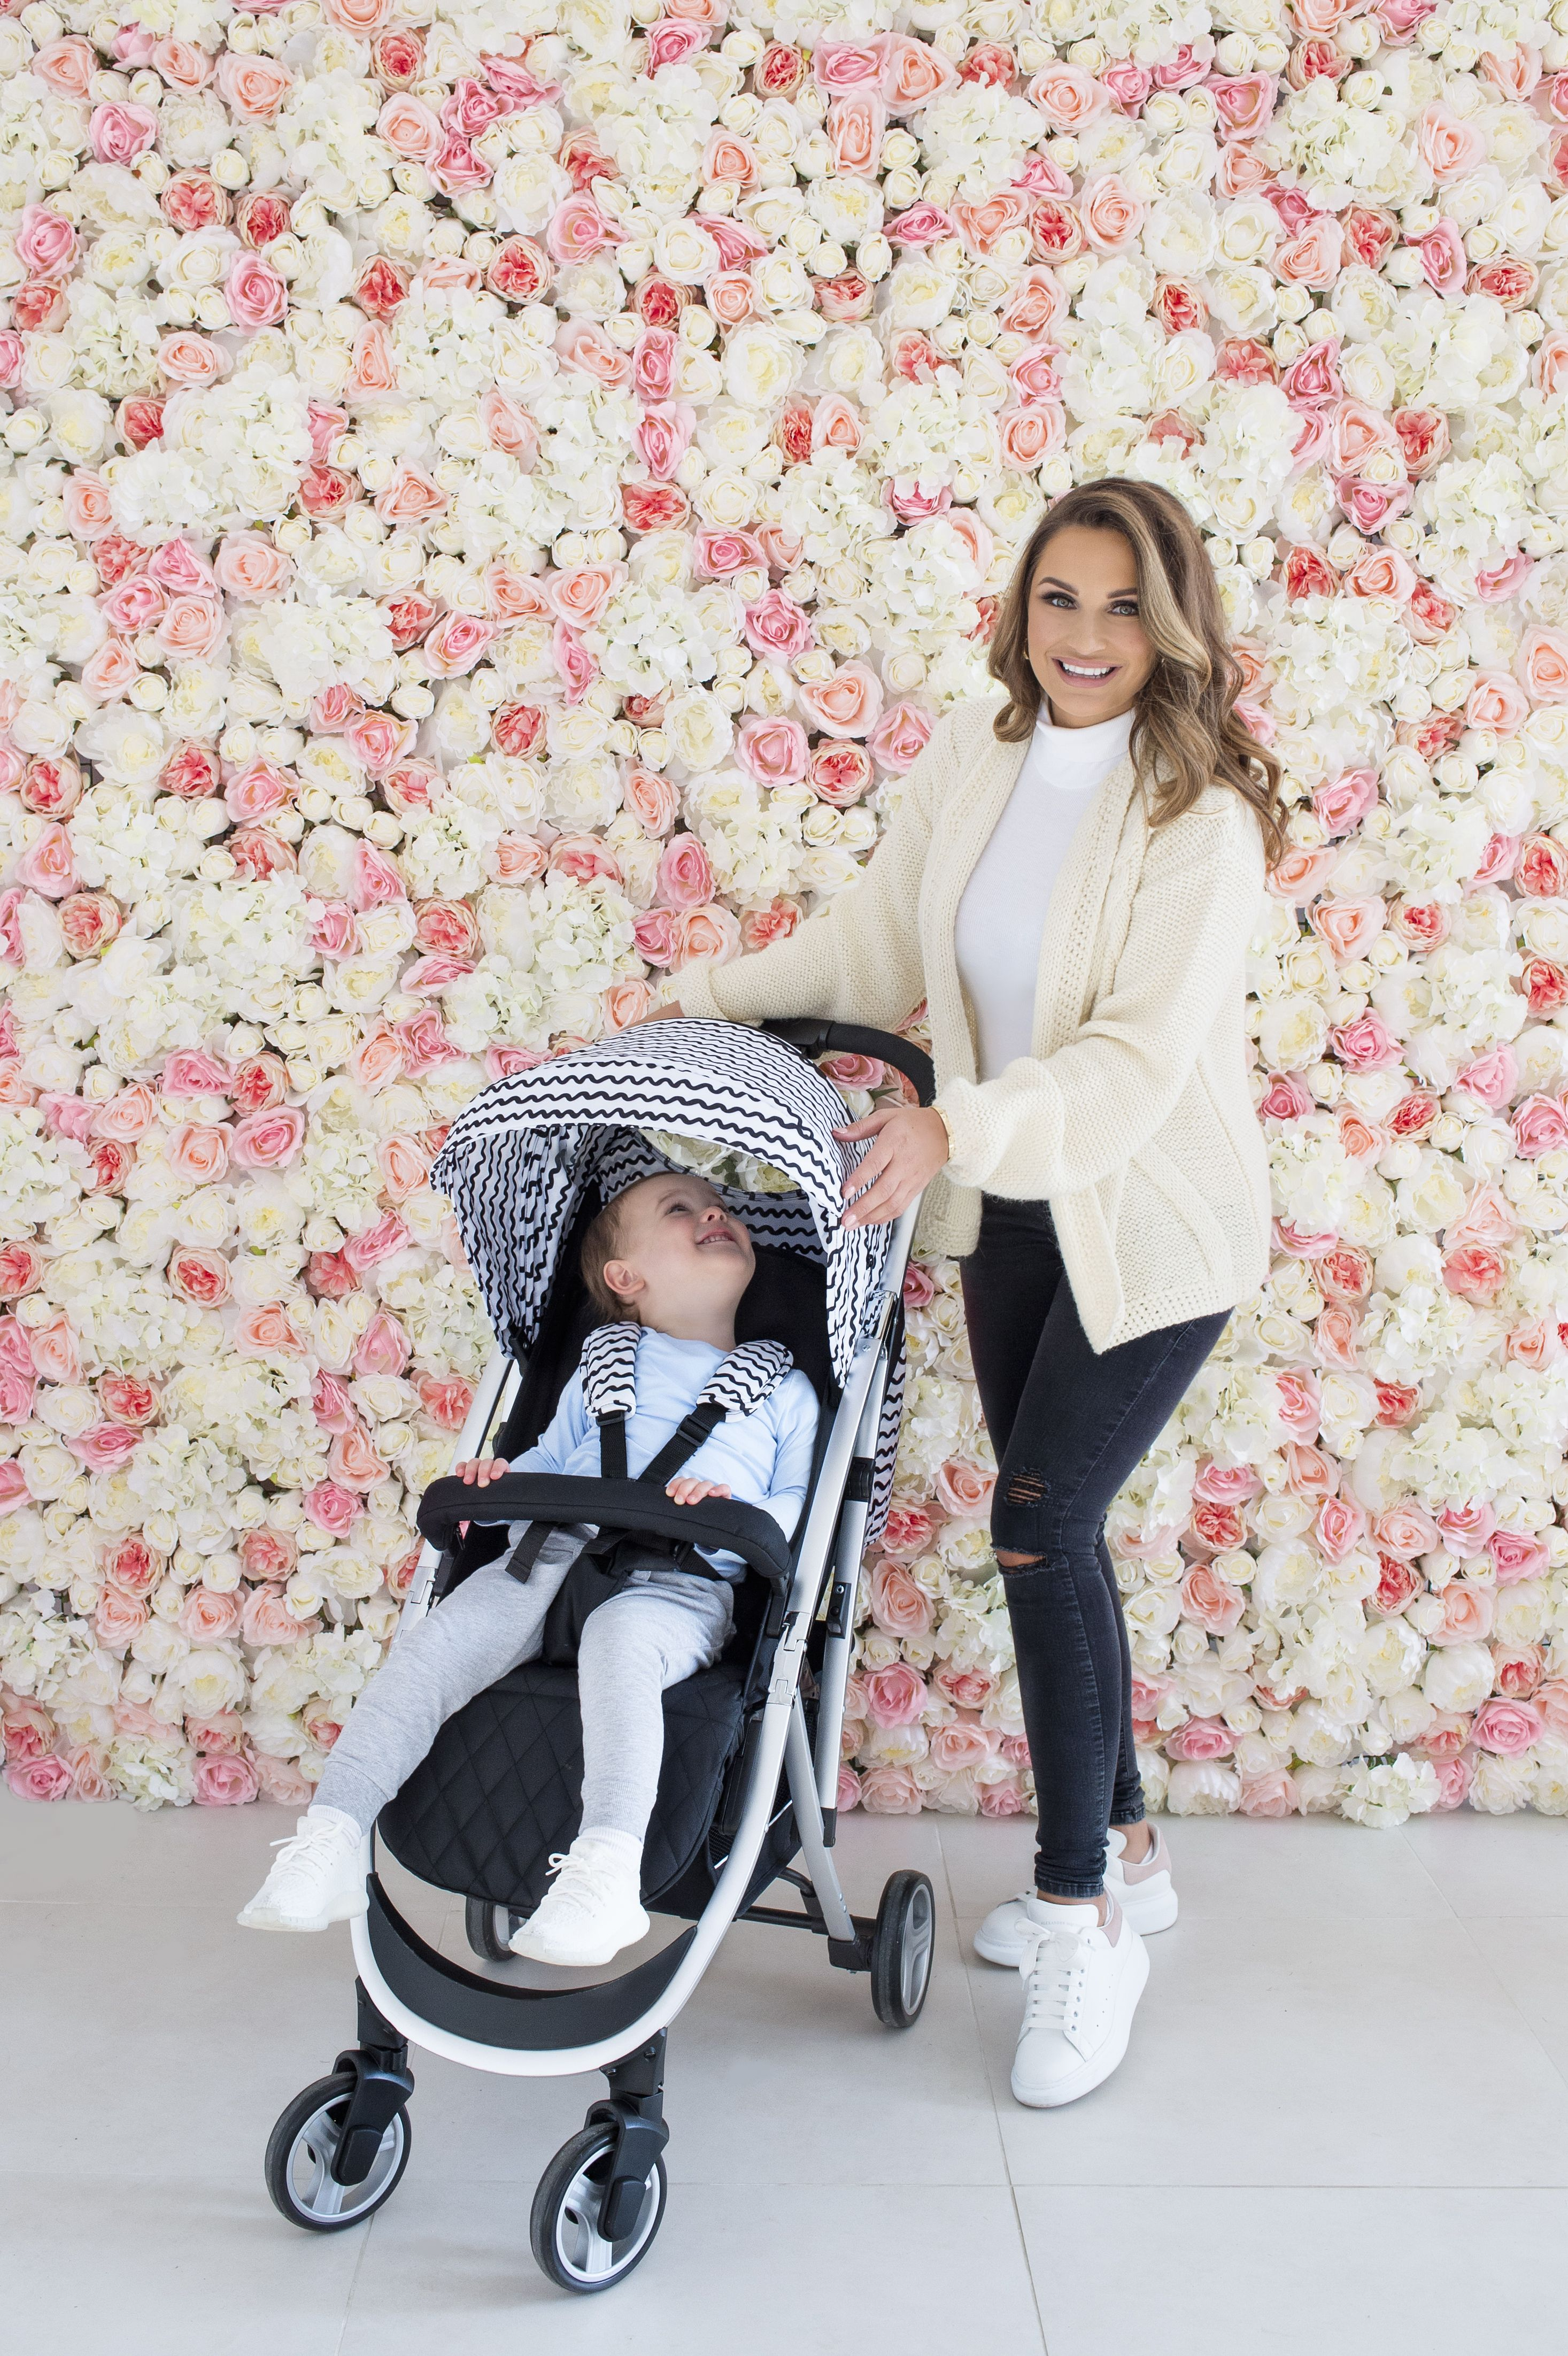 6eac8961a9c2 Meet the Dreamiie by Samantha Faiers MBX6 Black and White Wave Pushchair -  A lightweight, compact and stylish this model weighs just 7.5 kg!